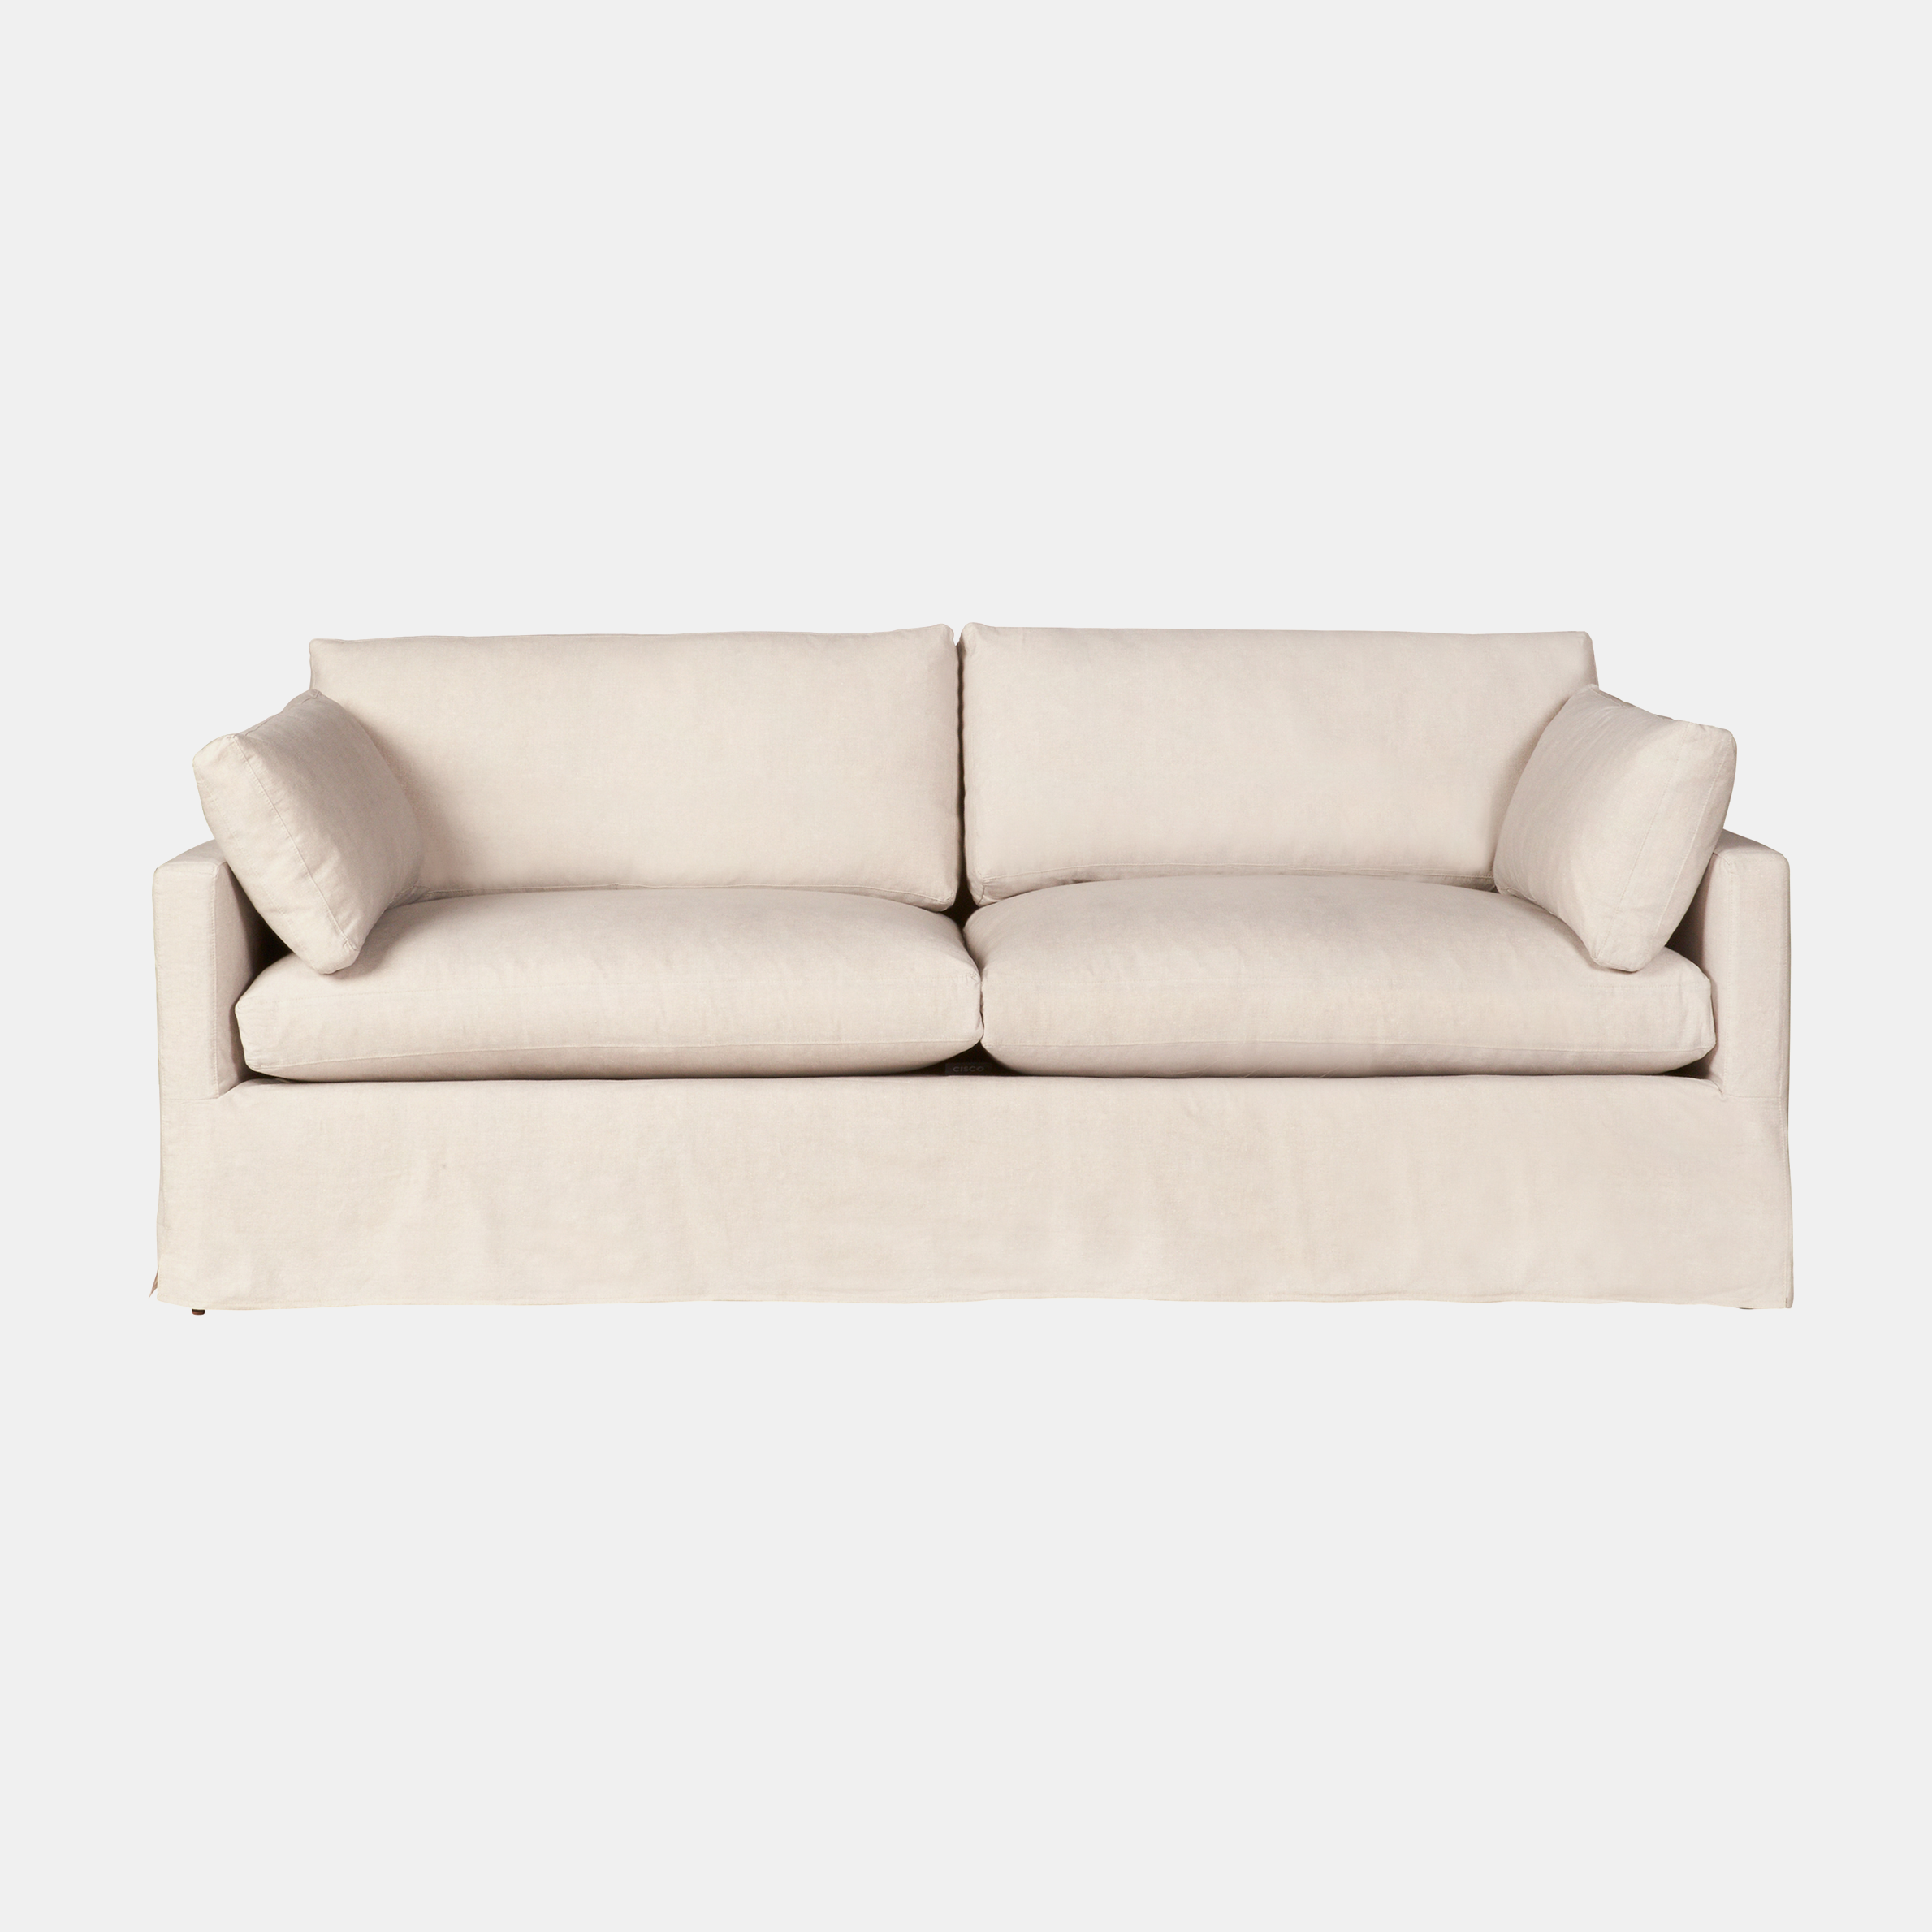 """Louis Sofa  90""""w x 31""""h x 40""""d 78""""w x 31""""h x 40""""d Also available as chair, mini chair, and sectional. SKU888CSC"""